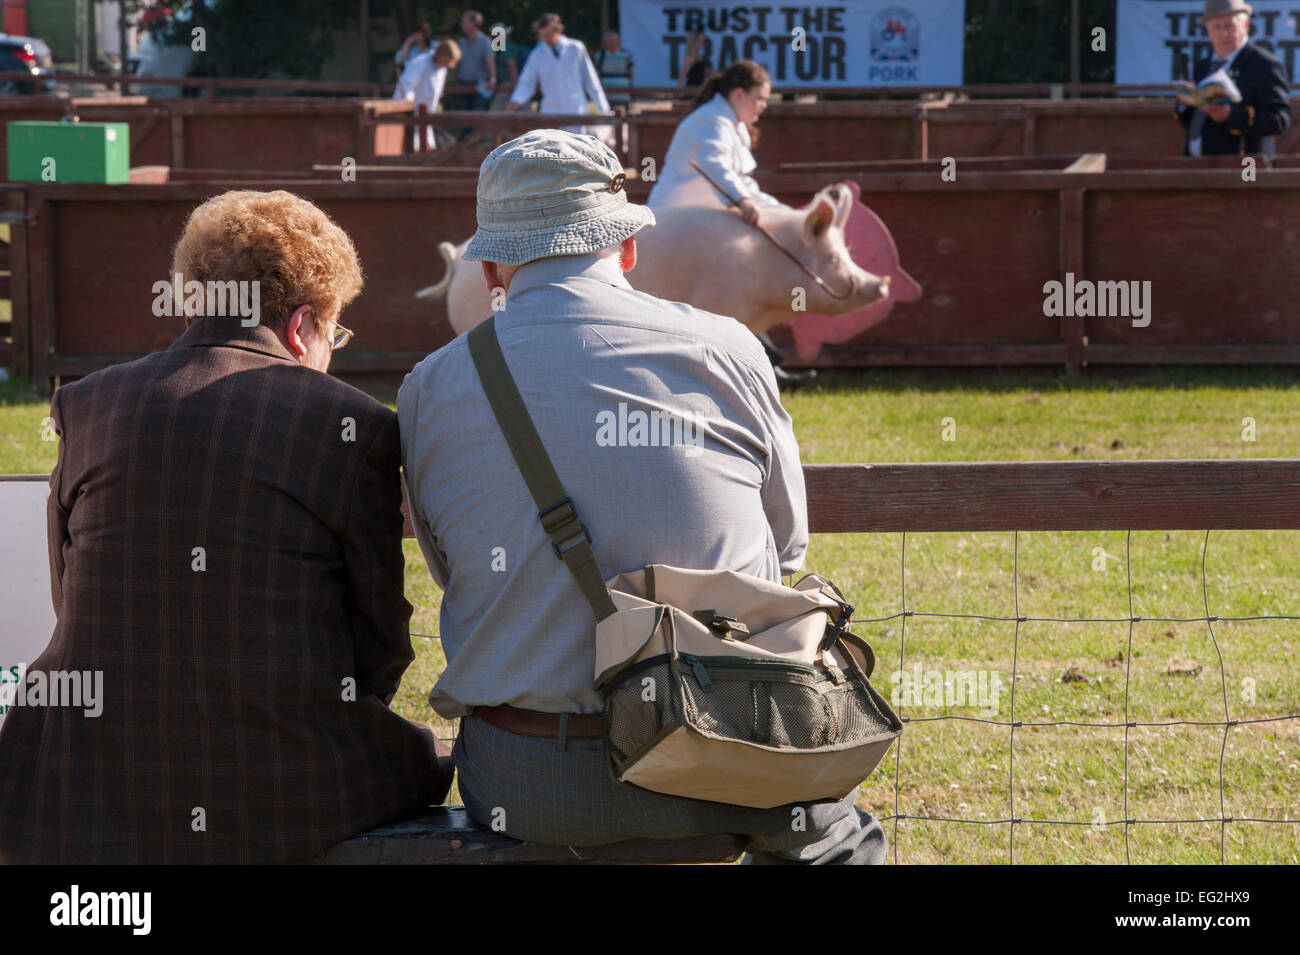 Day out for 2 elderly spectators who watch a Large White Pig & handler, walking round show ring - The Great - Stock Image